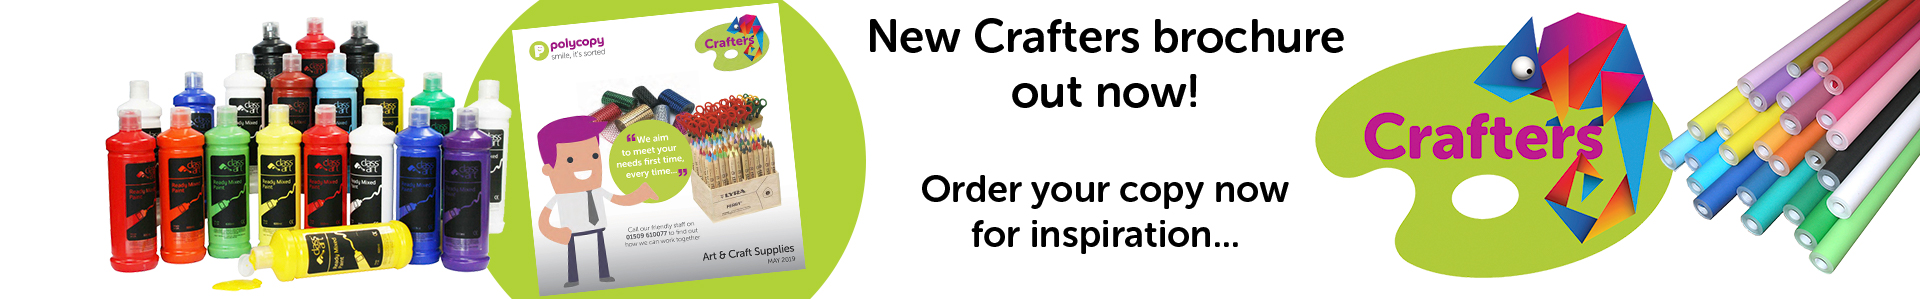 Polycopy Crafters brochure - get your inspiration now